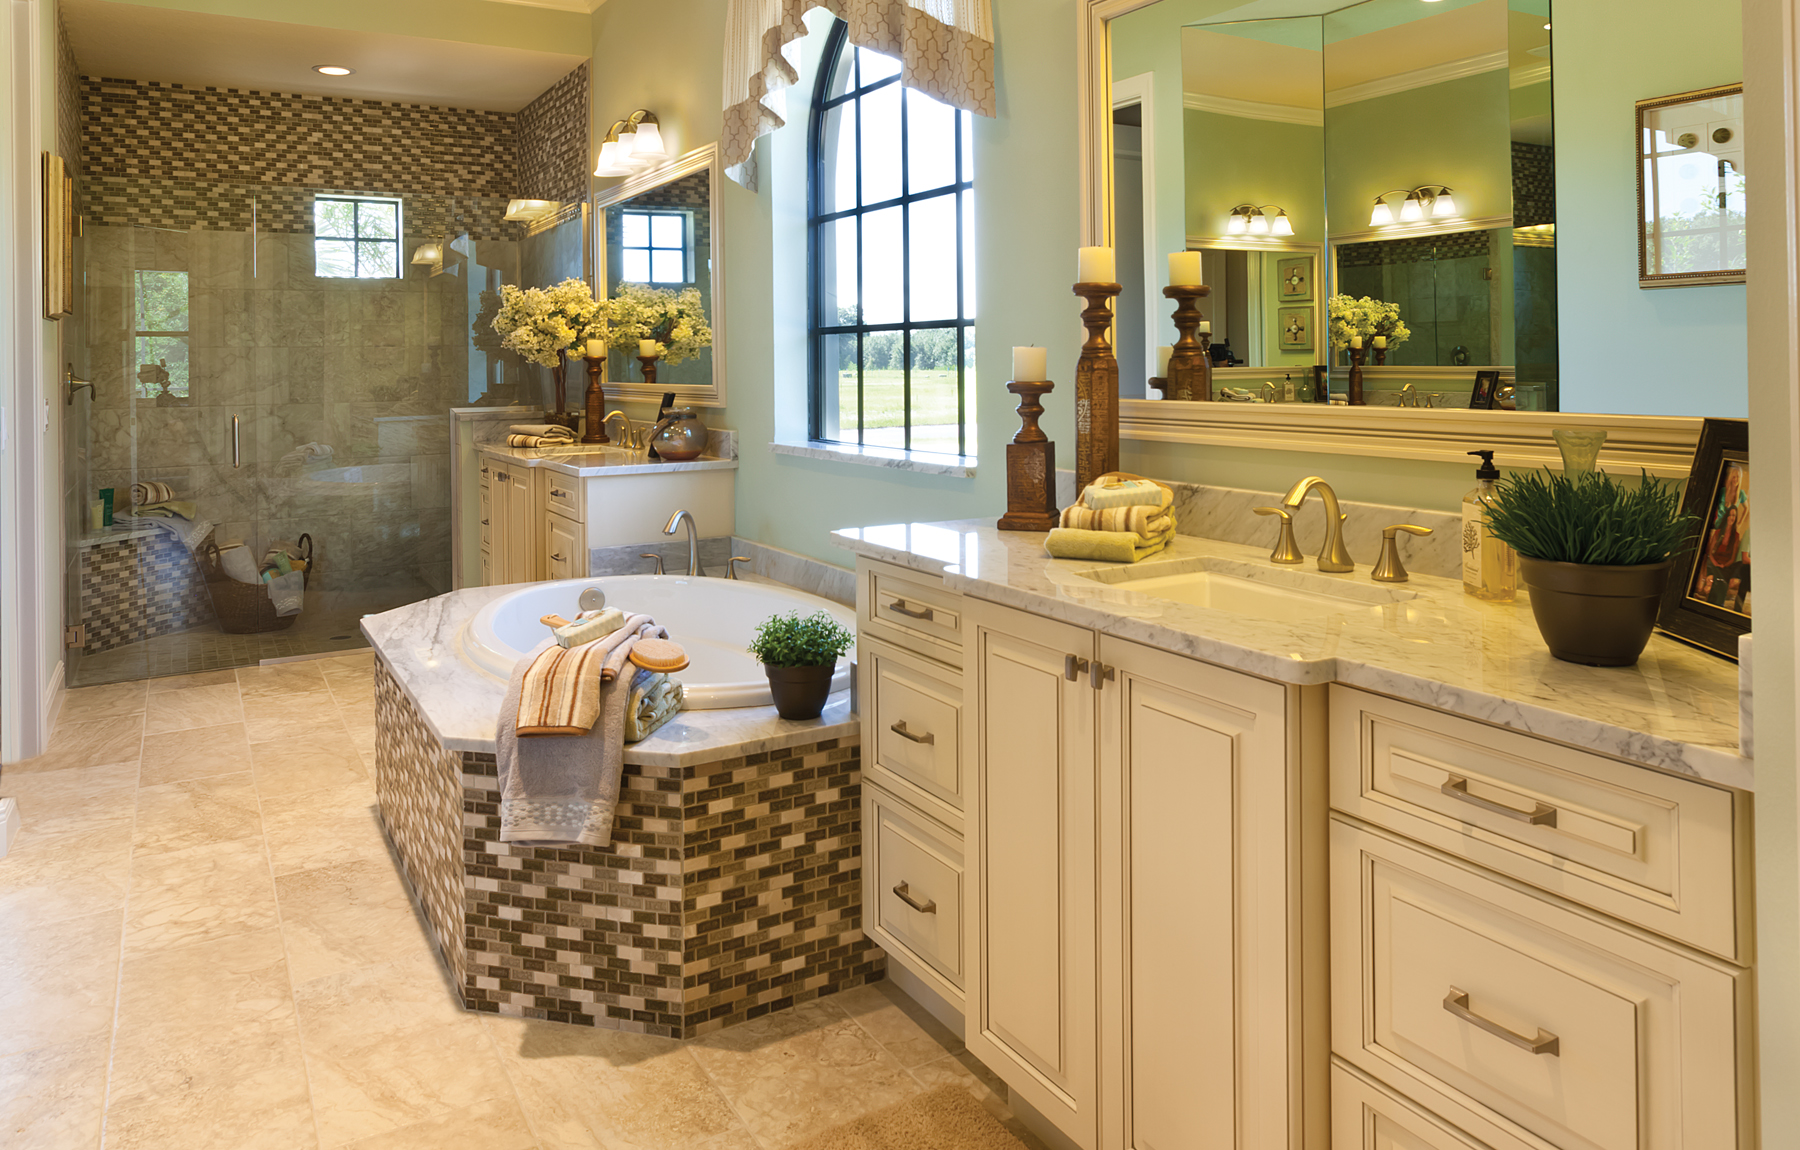 The Caaren John Cannon Homes master bath